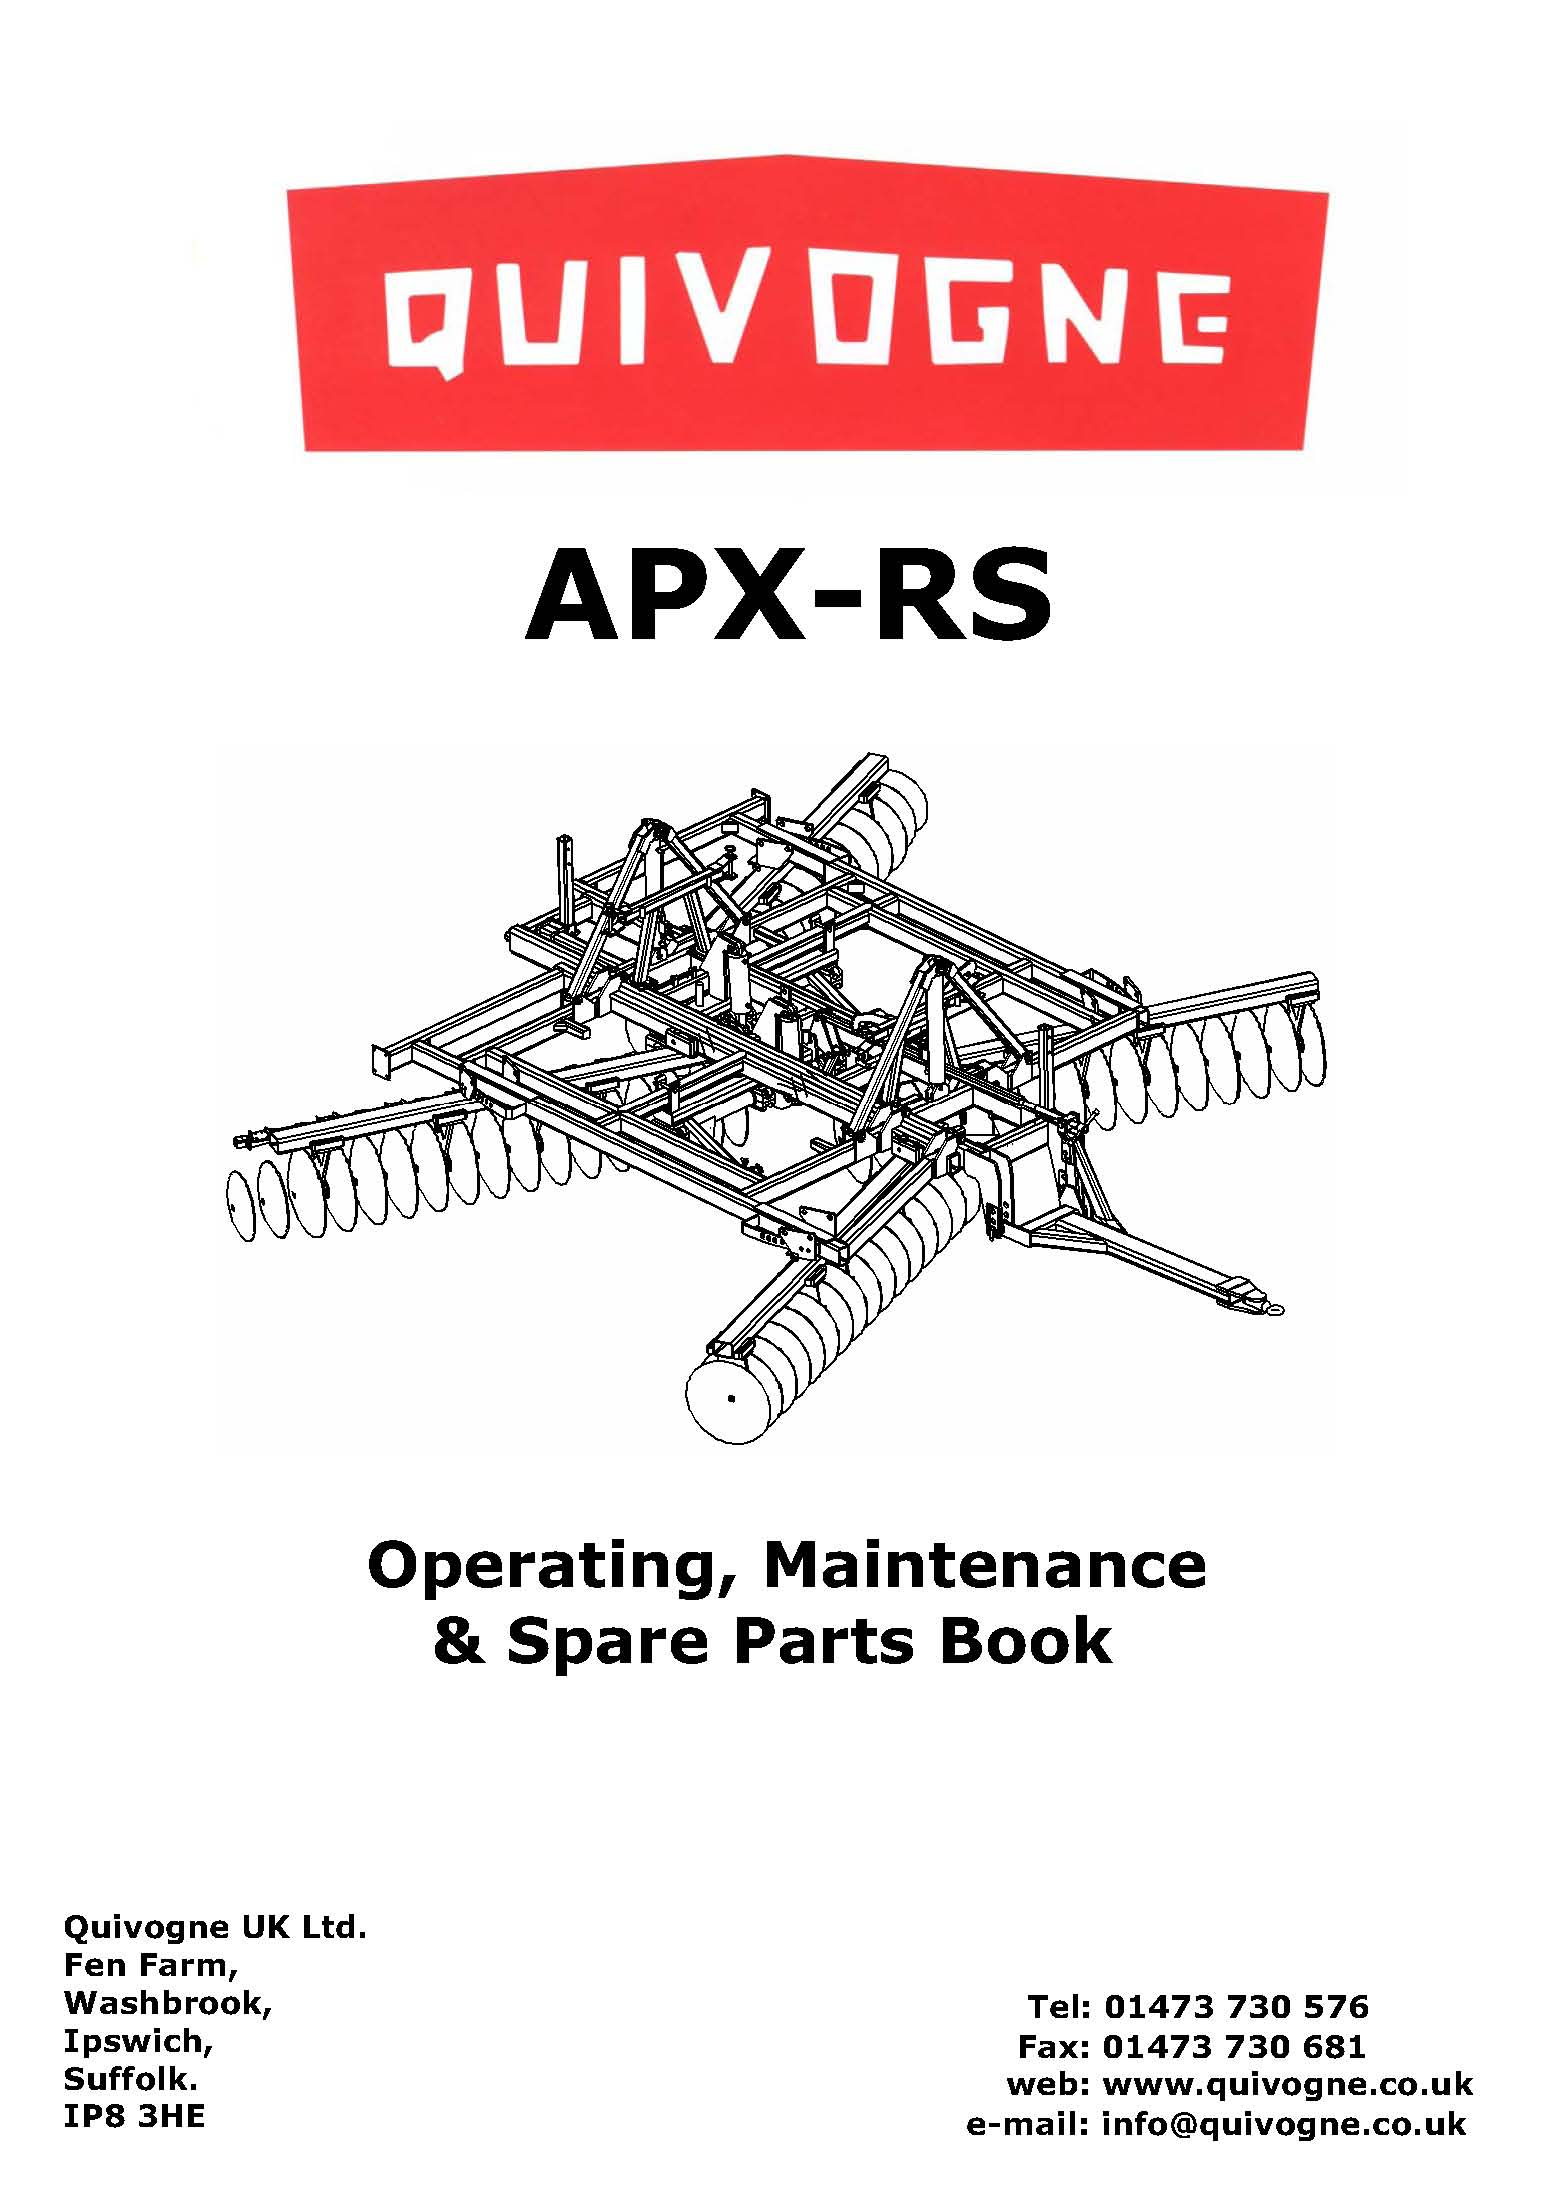 APX-RS complete book